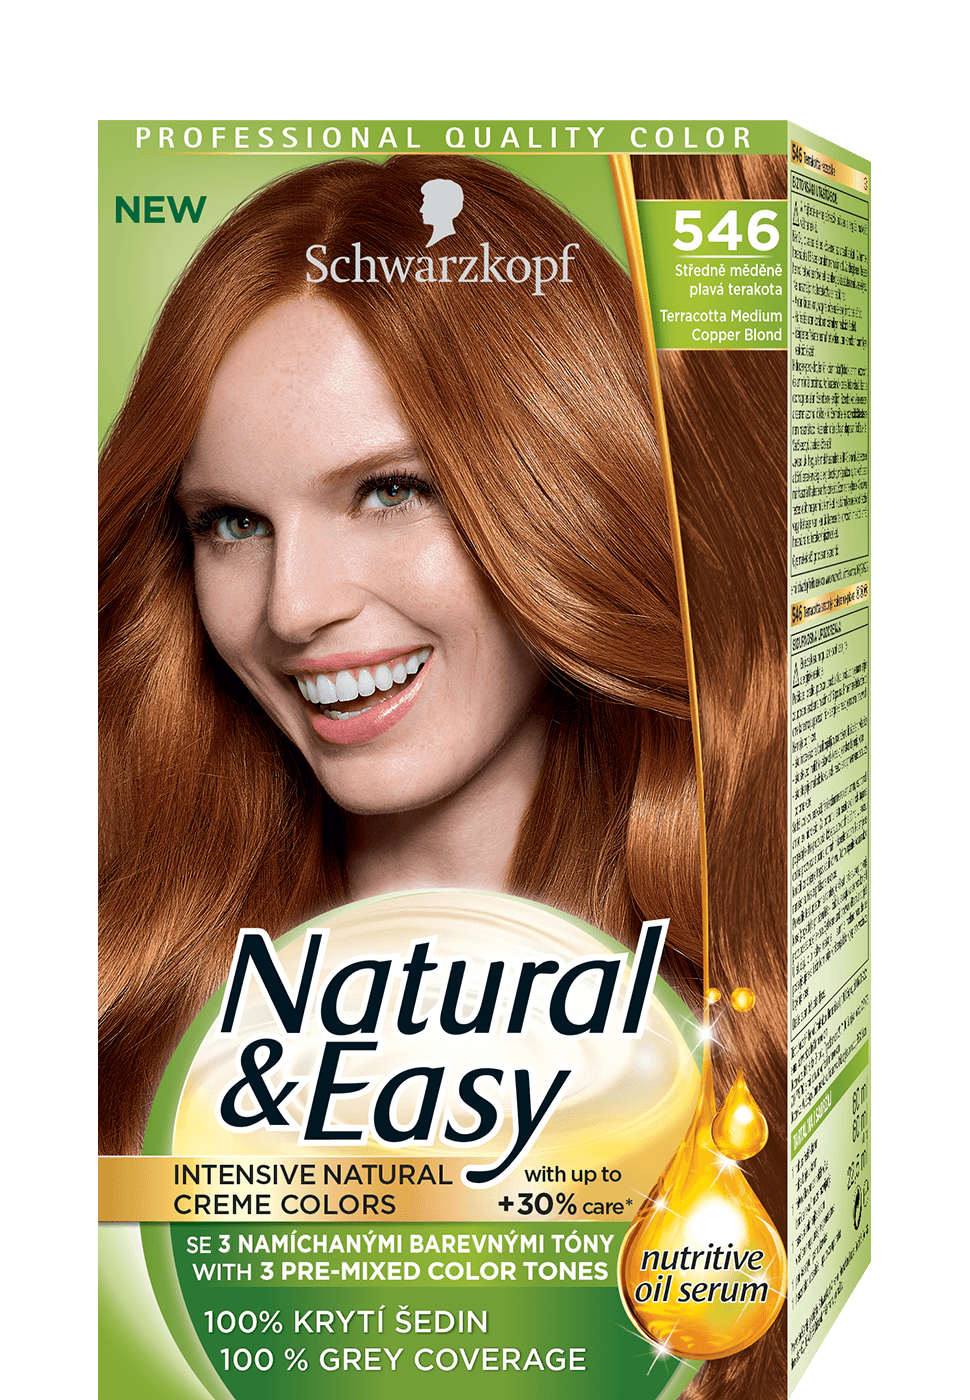 natural_easy_com_red_hair_546_terracotta_medium_copperblond_970x1400